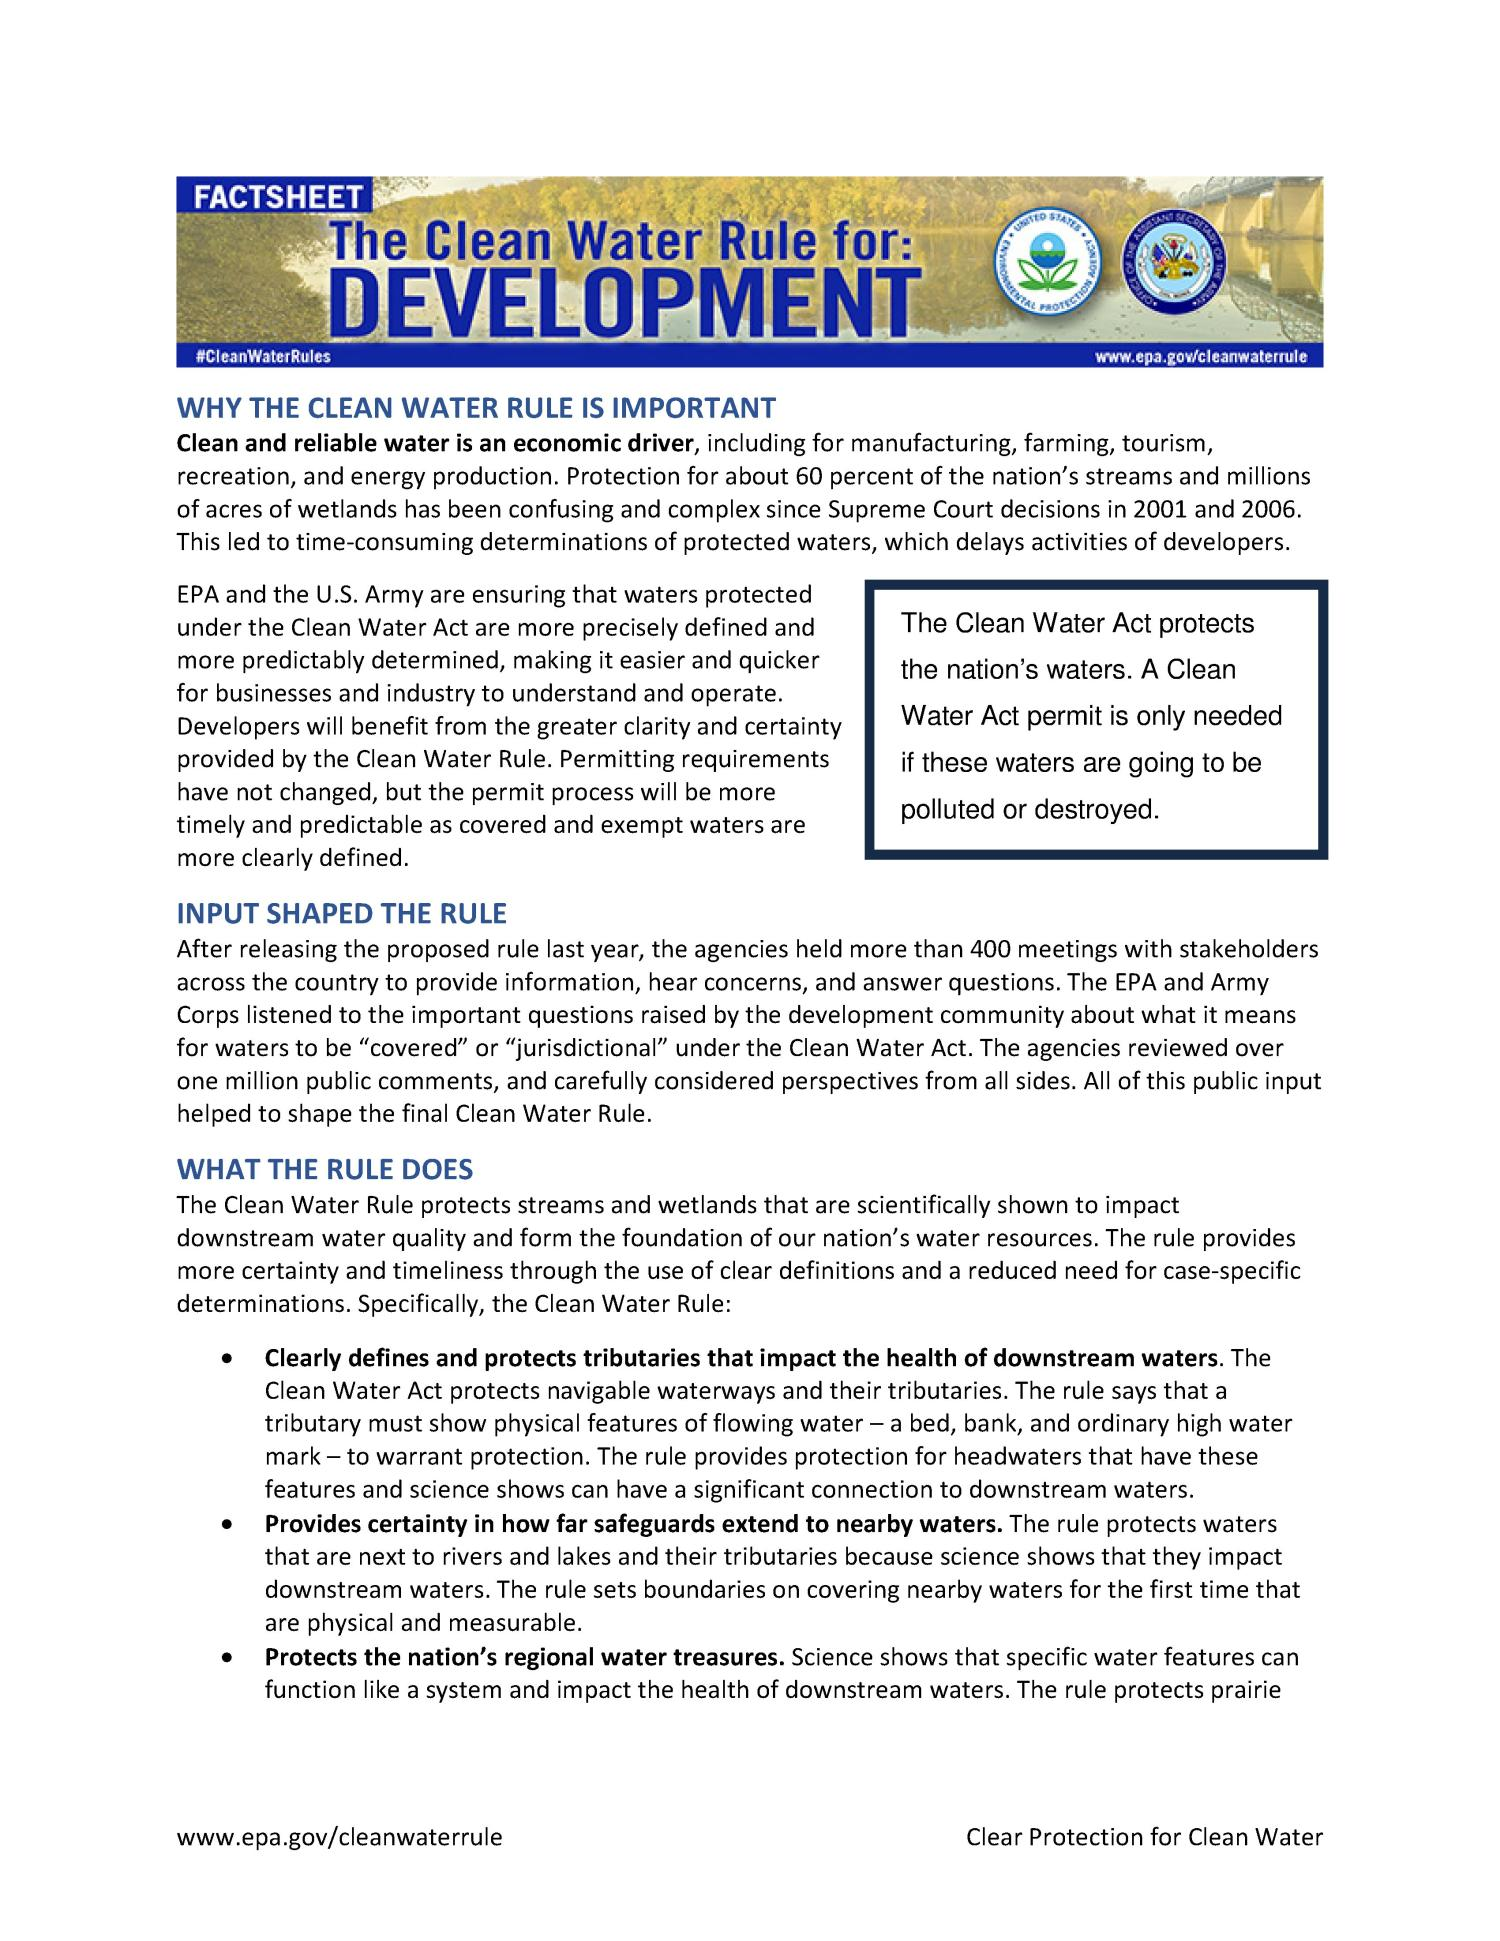 The Clean Water Rule for Development: Factsheet                                                                                                      [Sequence #]: 1 of 2